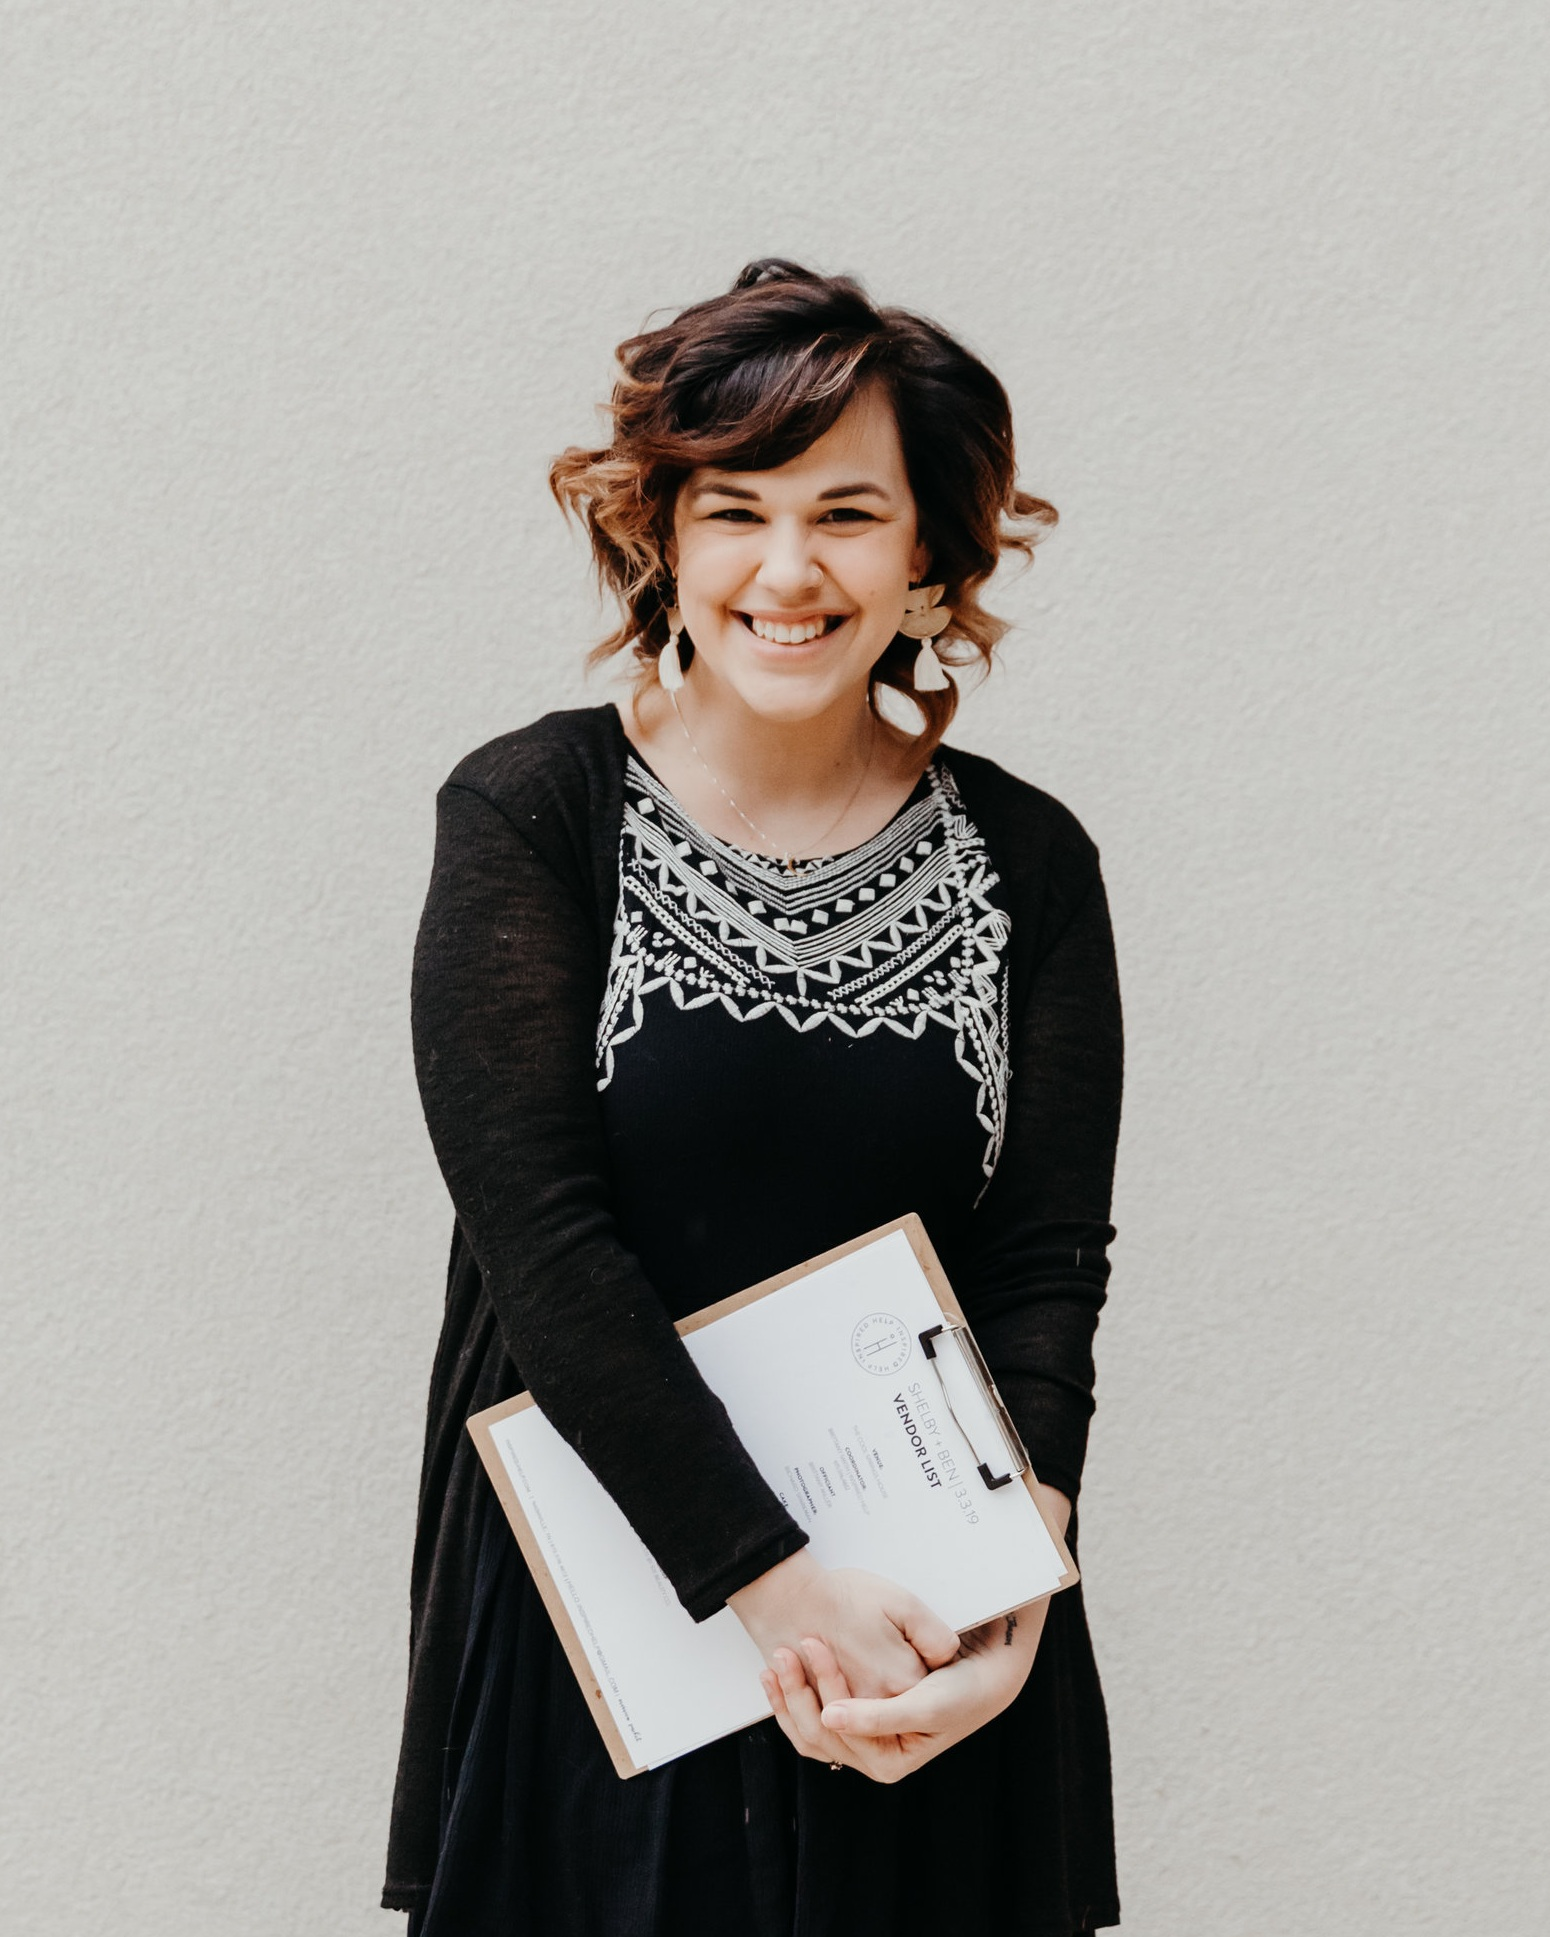 BRITTANY SMITH - OWNER + LEAD COORDINATOR